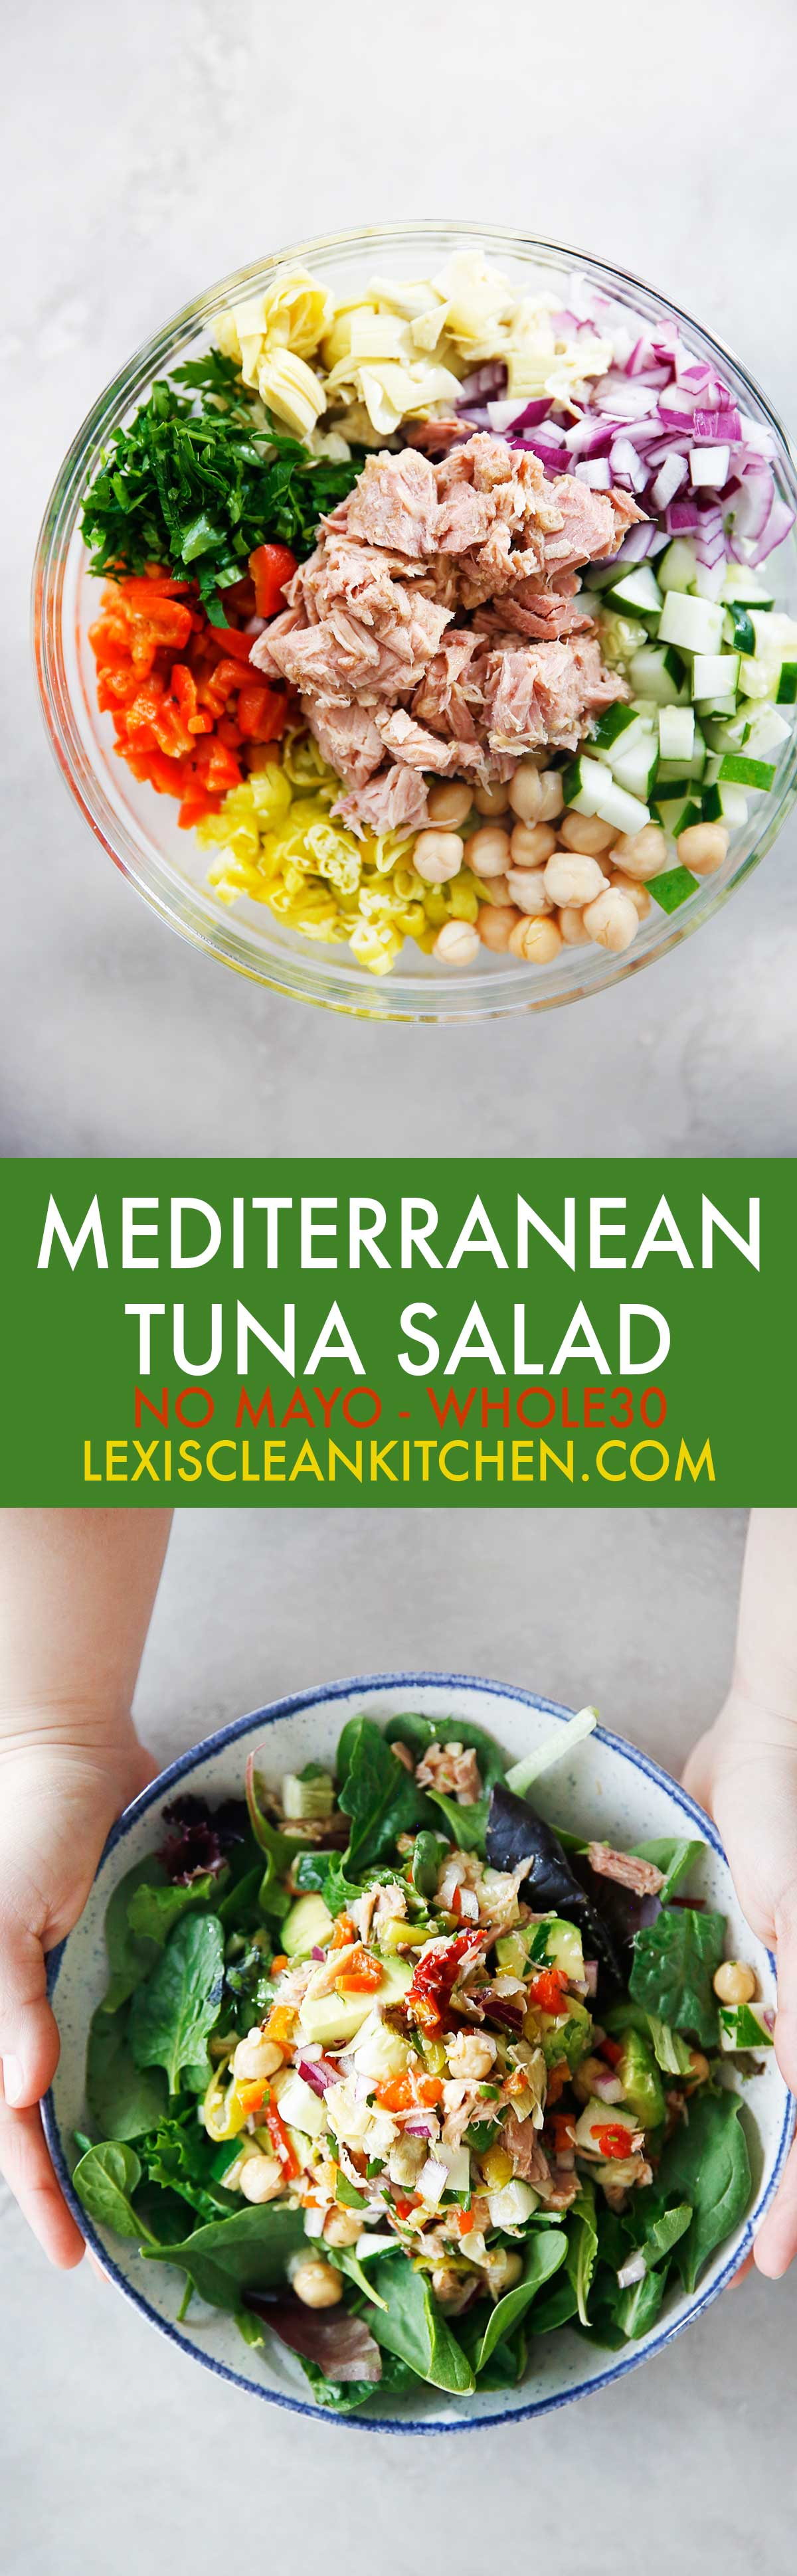 Lexi S Clean Kitchen Mediterranean Tuna Salad With No Mayo